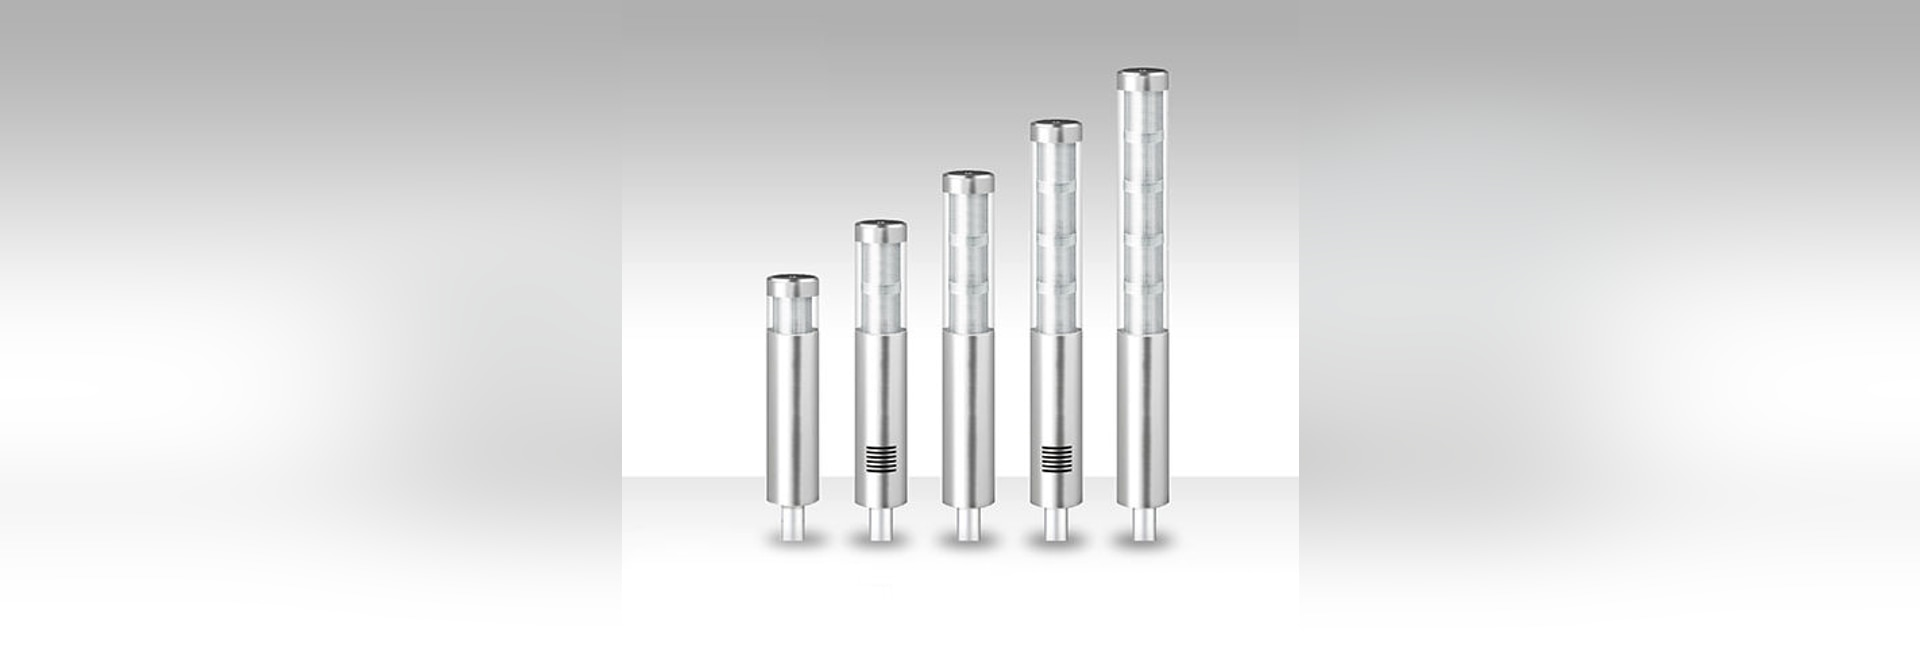 NEW: LED stack light by QLight